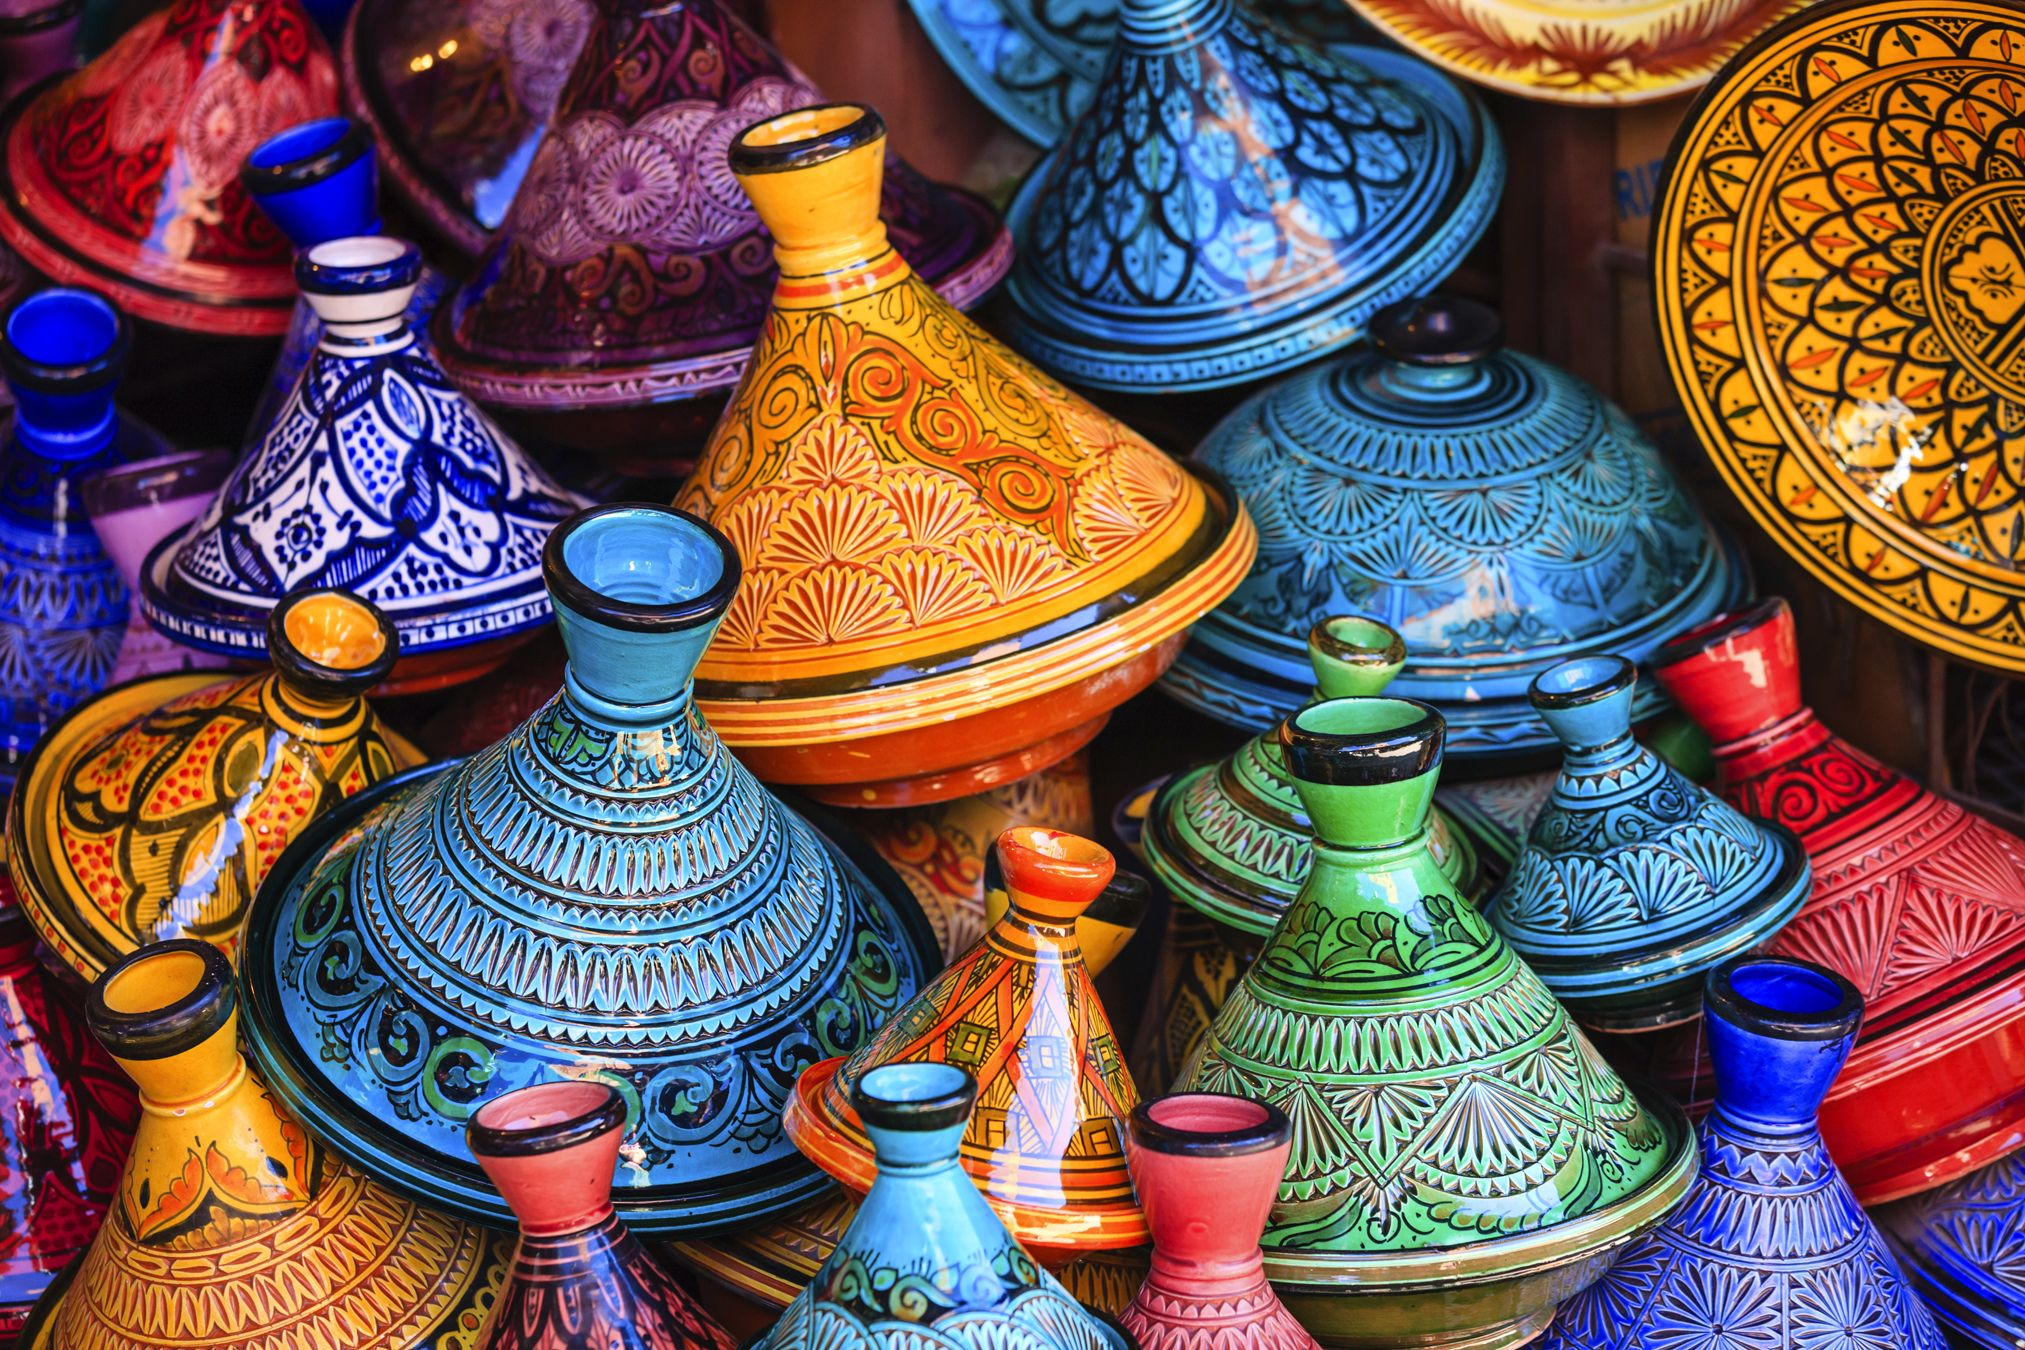 How To Shop the Streets of Marrakesh